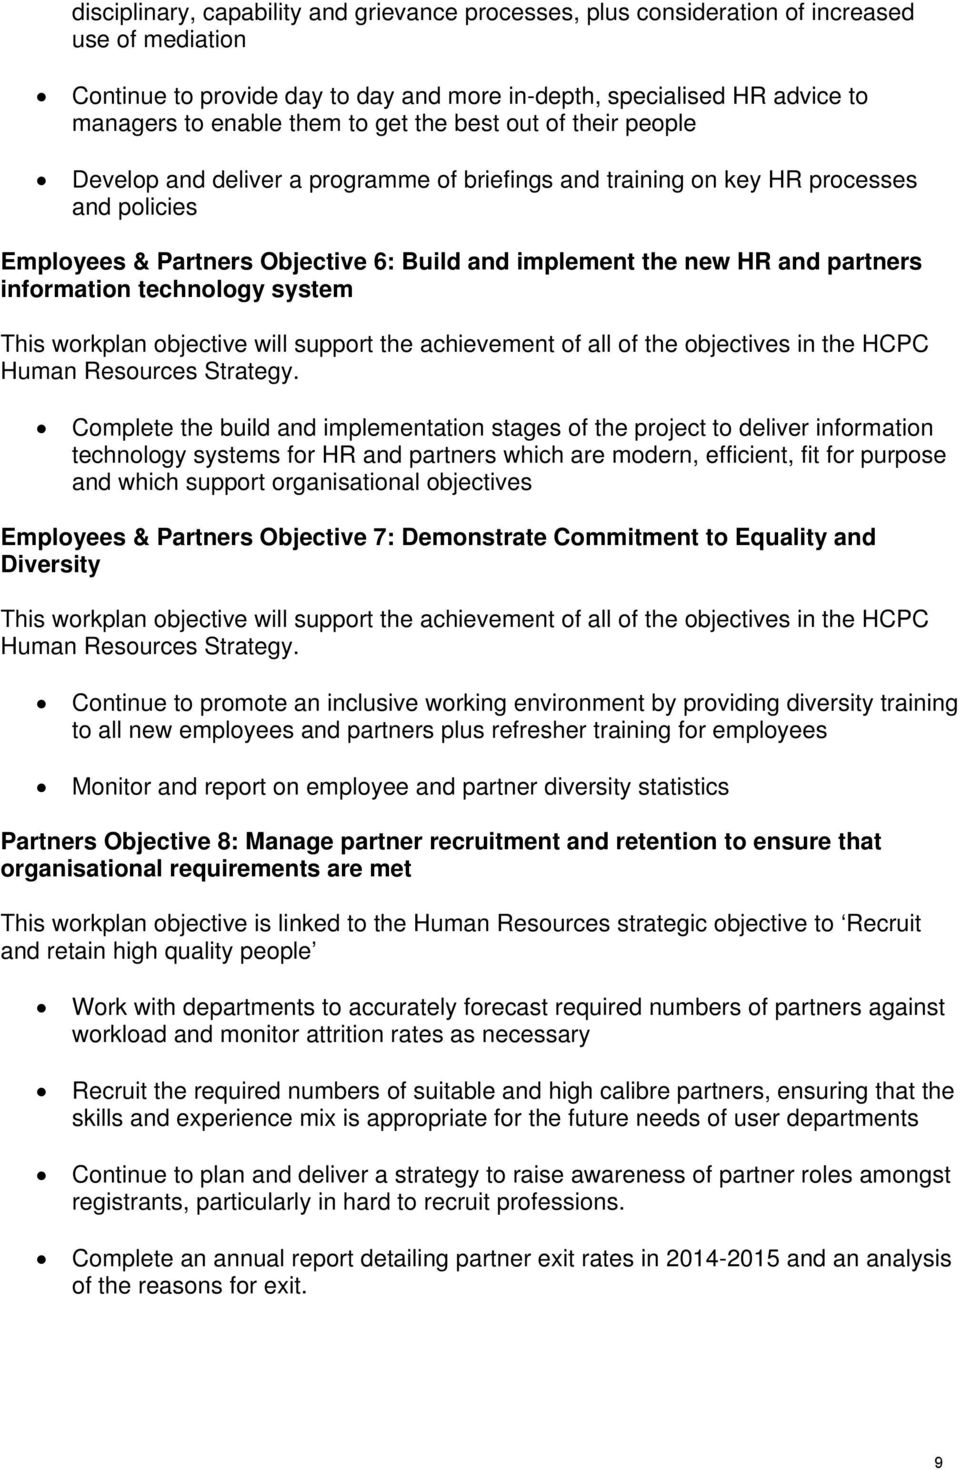 partners information technology system This workplan objective will support the achievement of all of the objectives in the HCPC Human Resources Strategy.